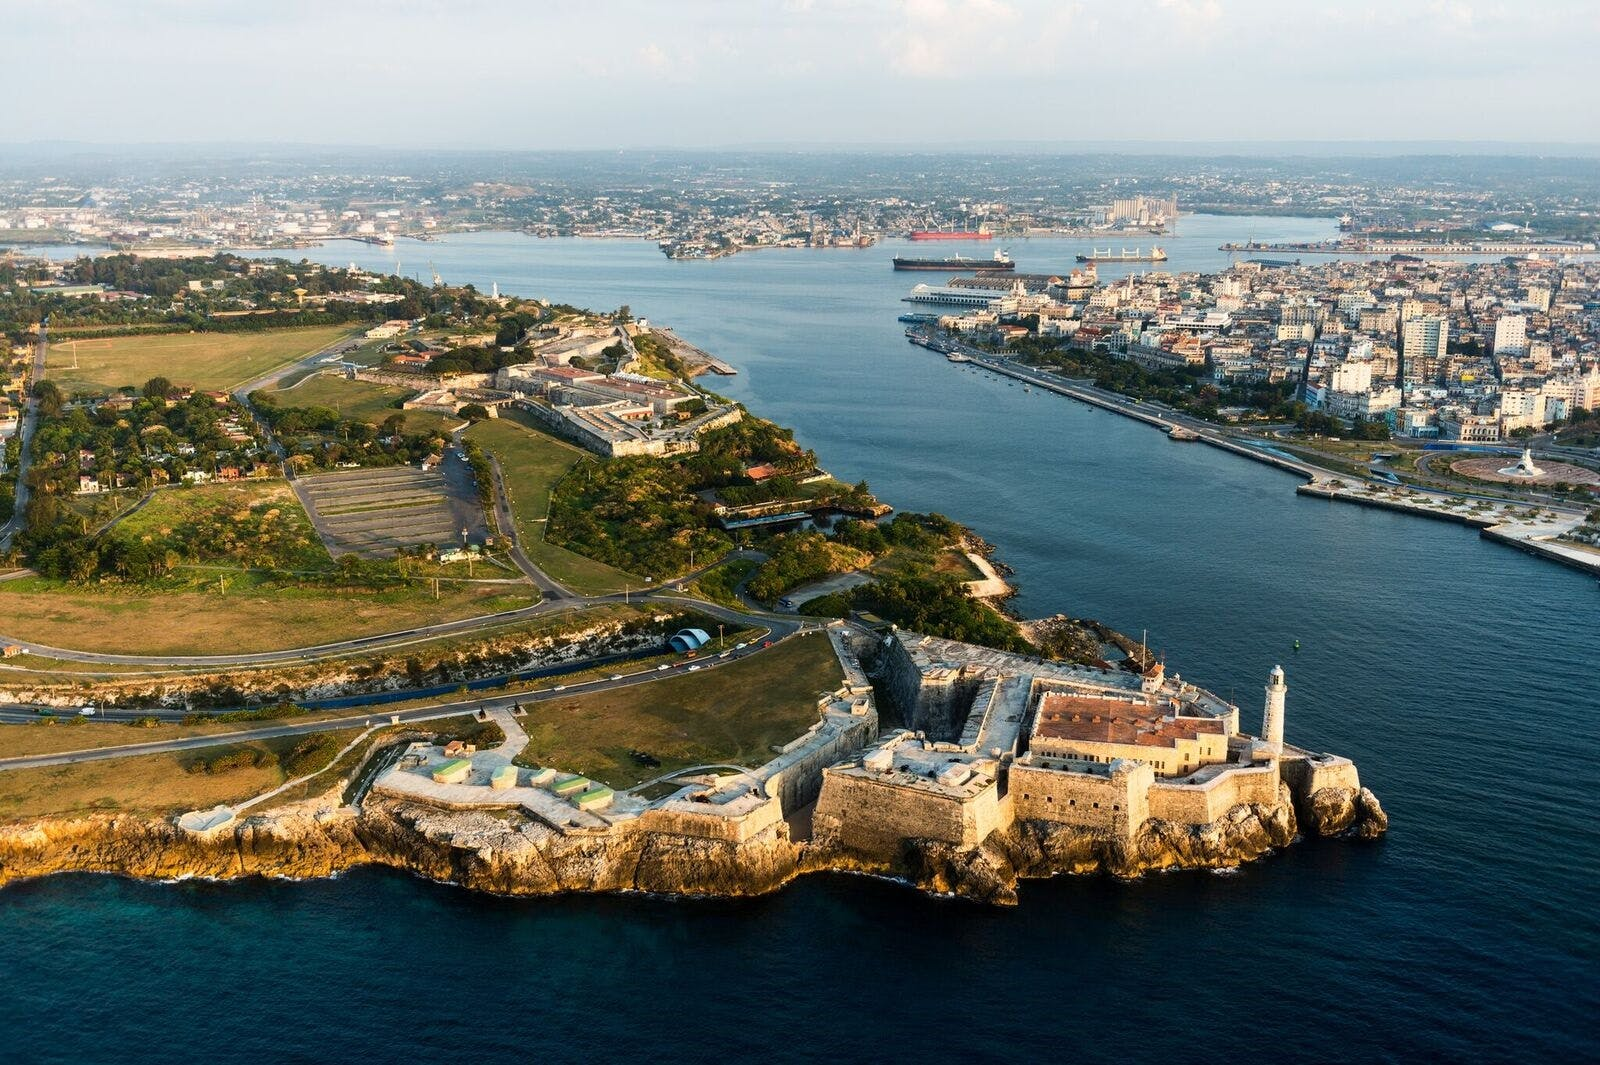 El Morro is easily one of the most iconic castles in Cuba